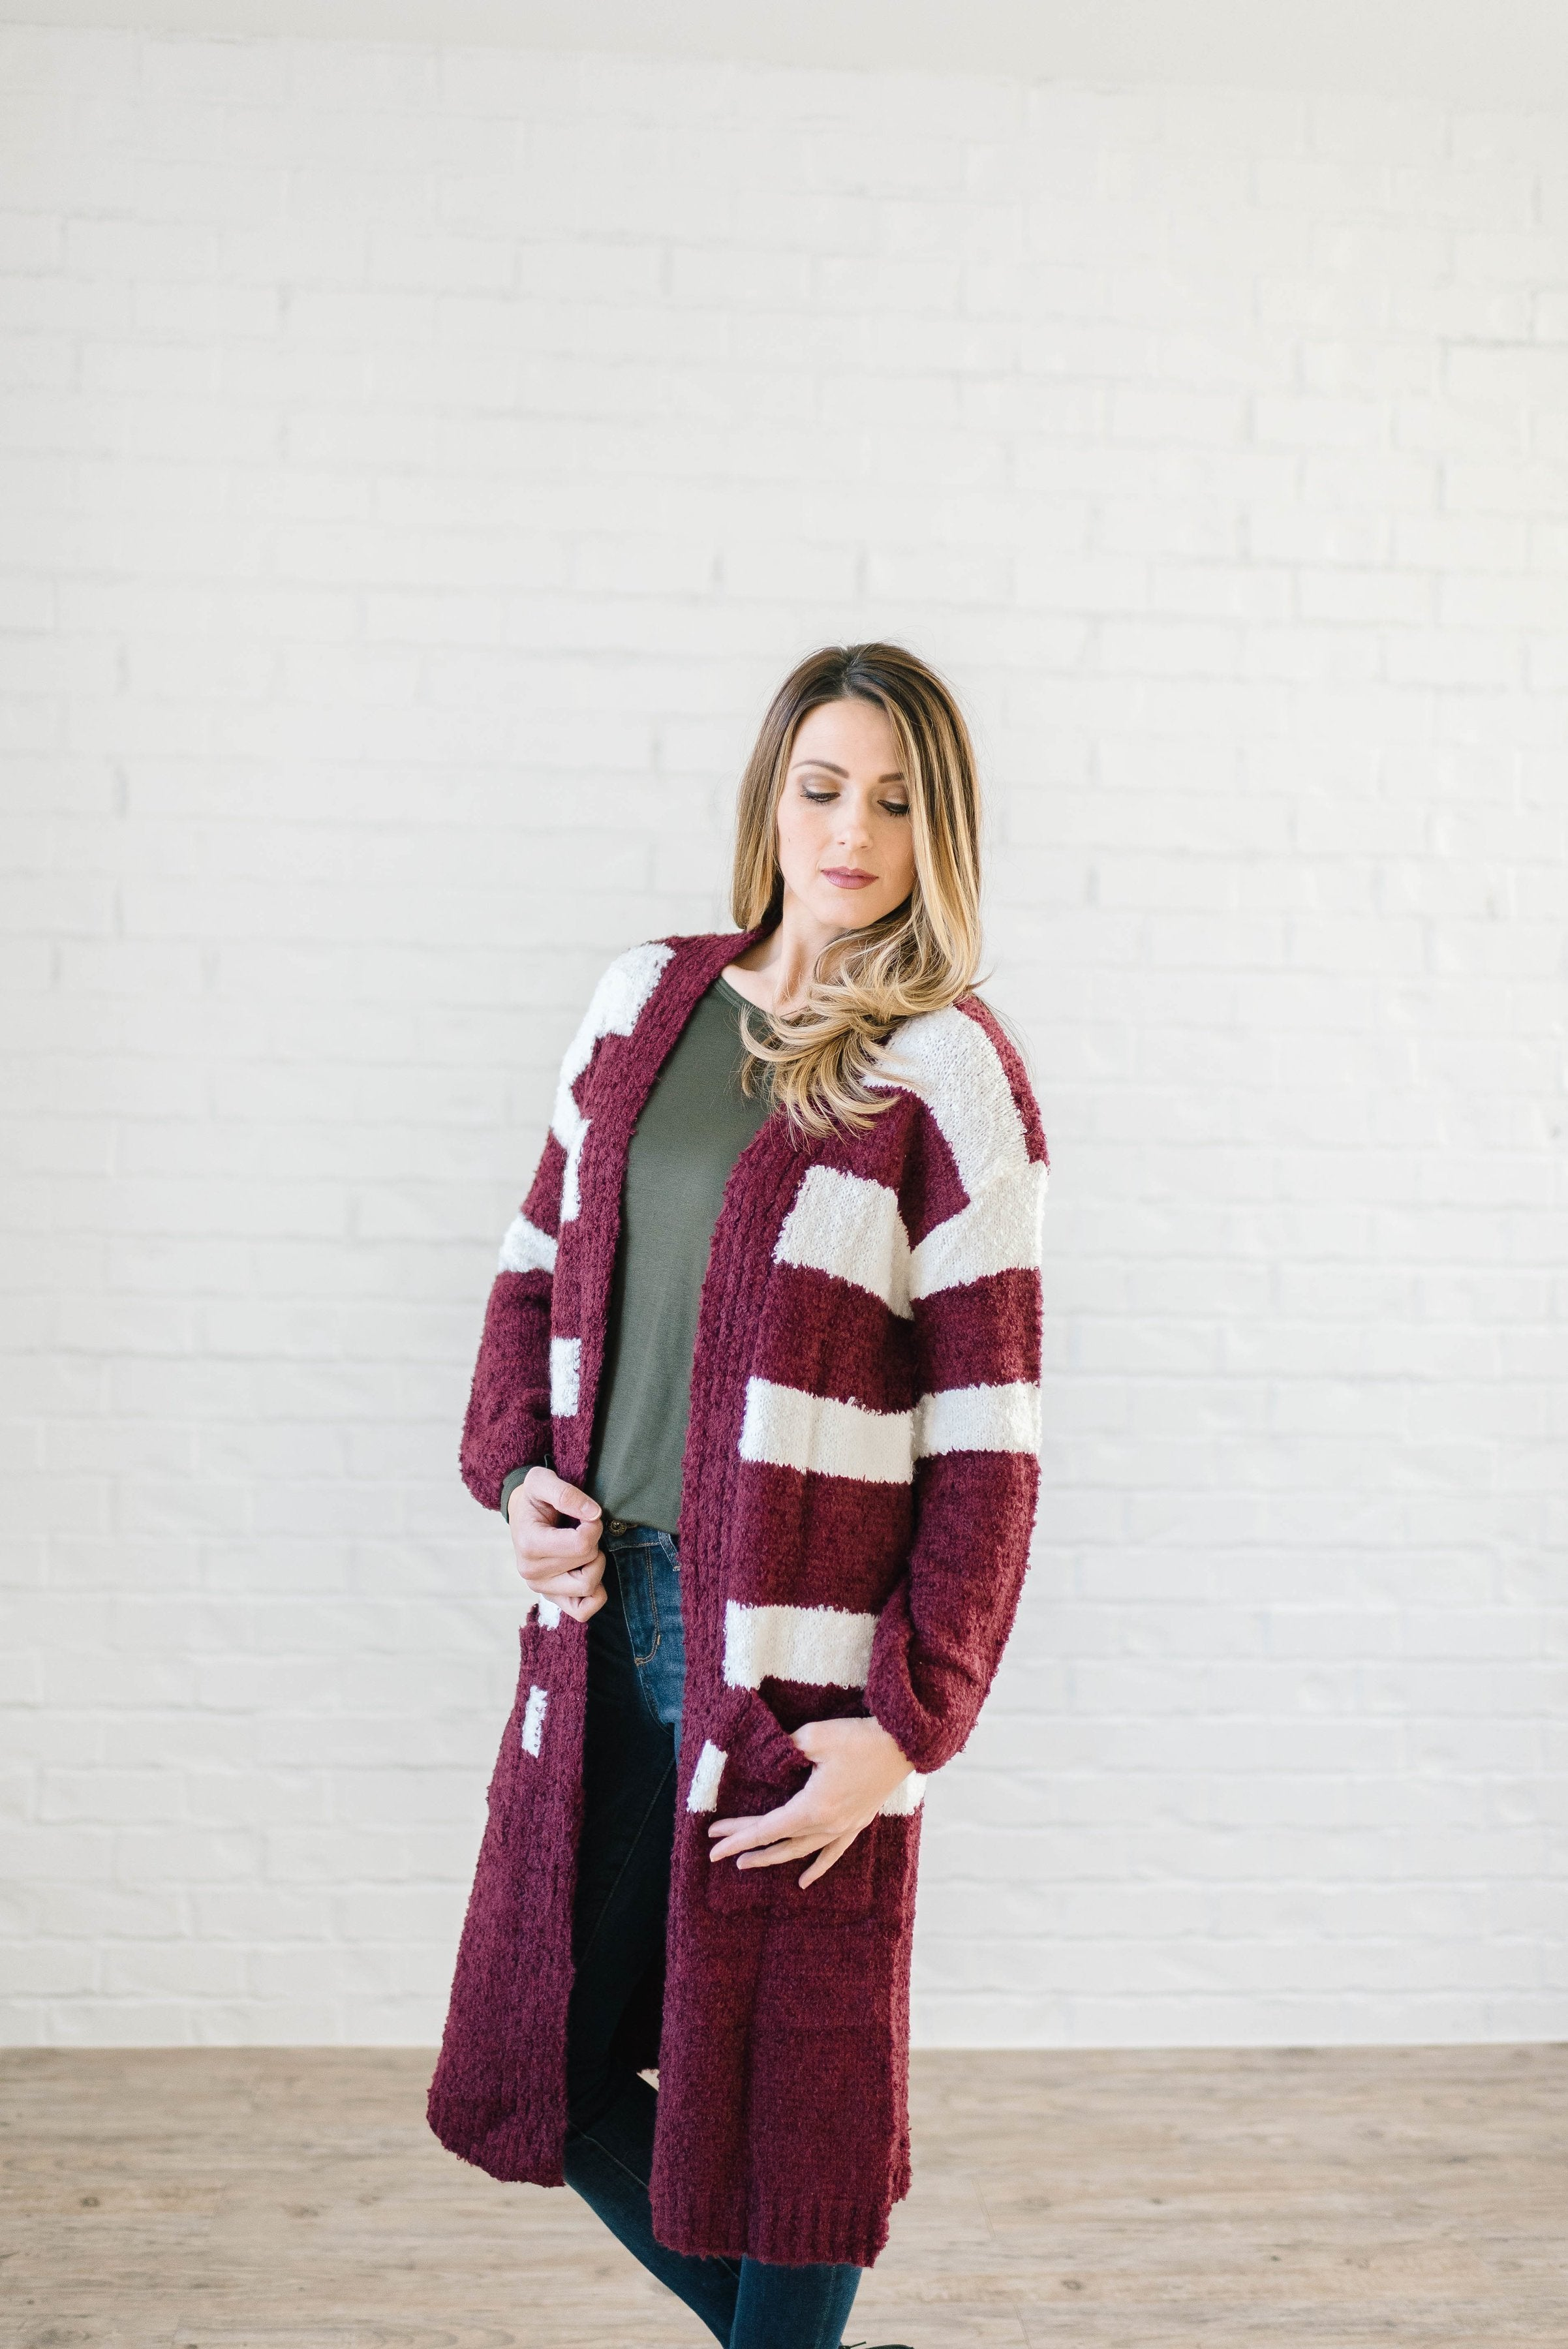 The Amelia Striped Cardi in Mulberry - ALL SALES FINAL